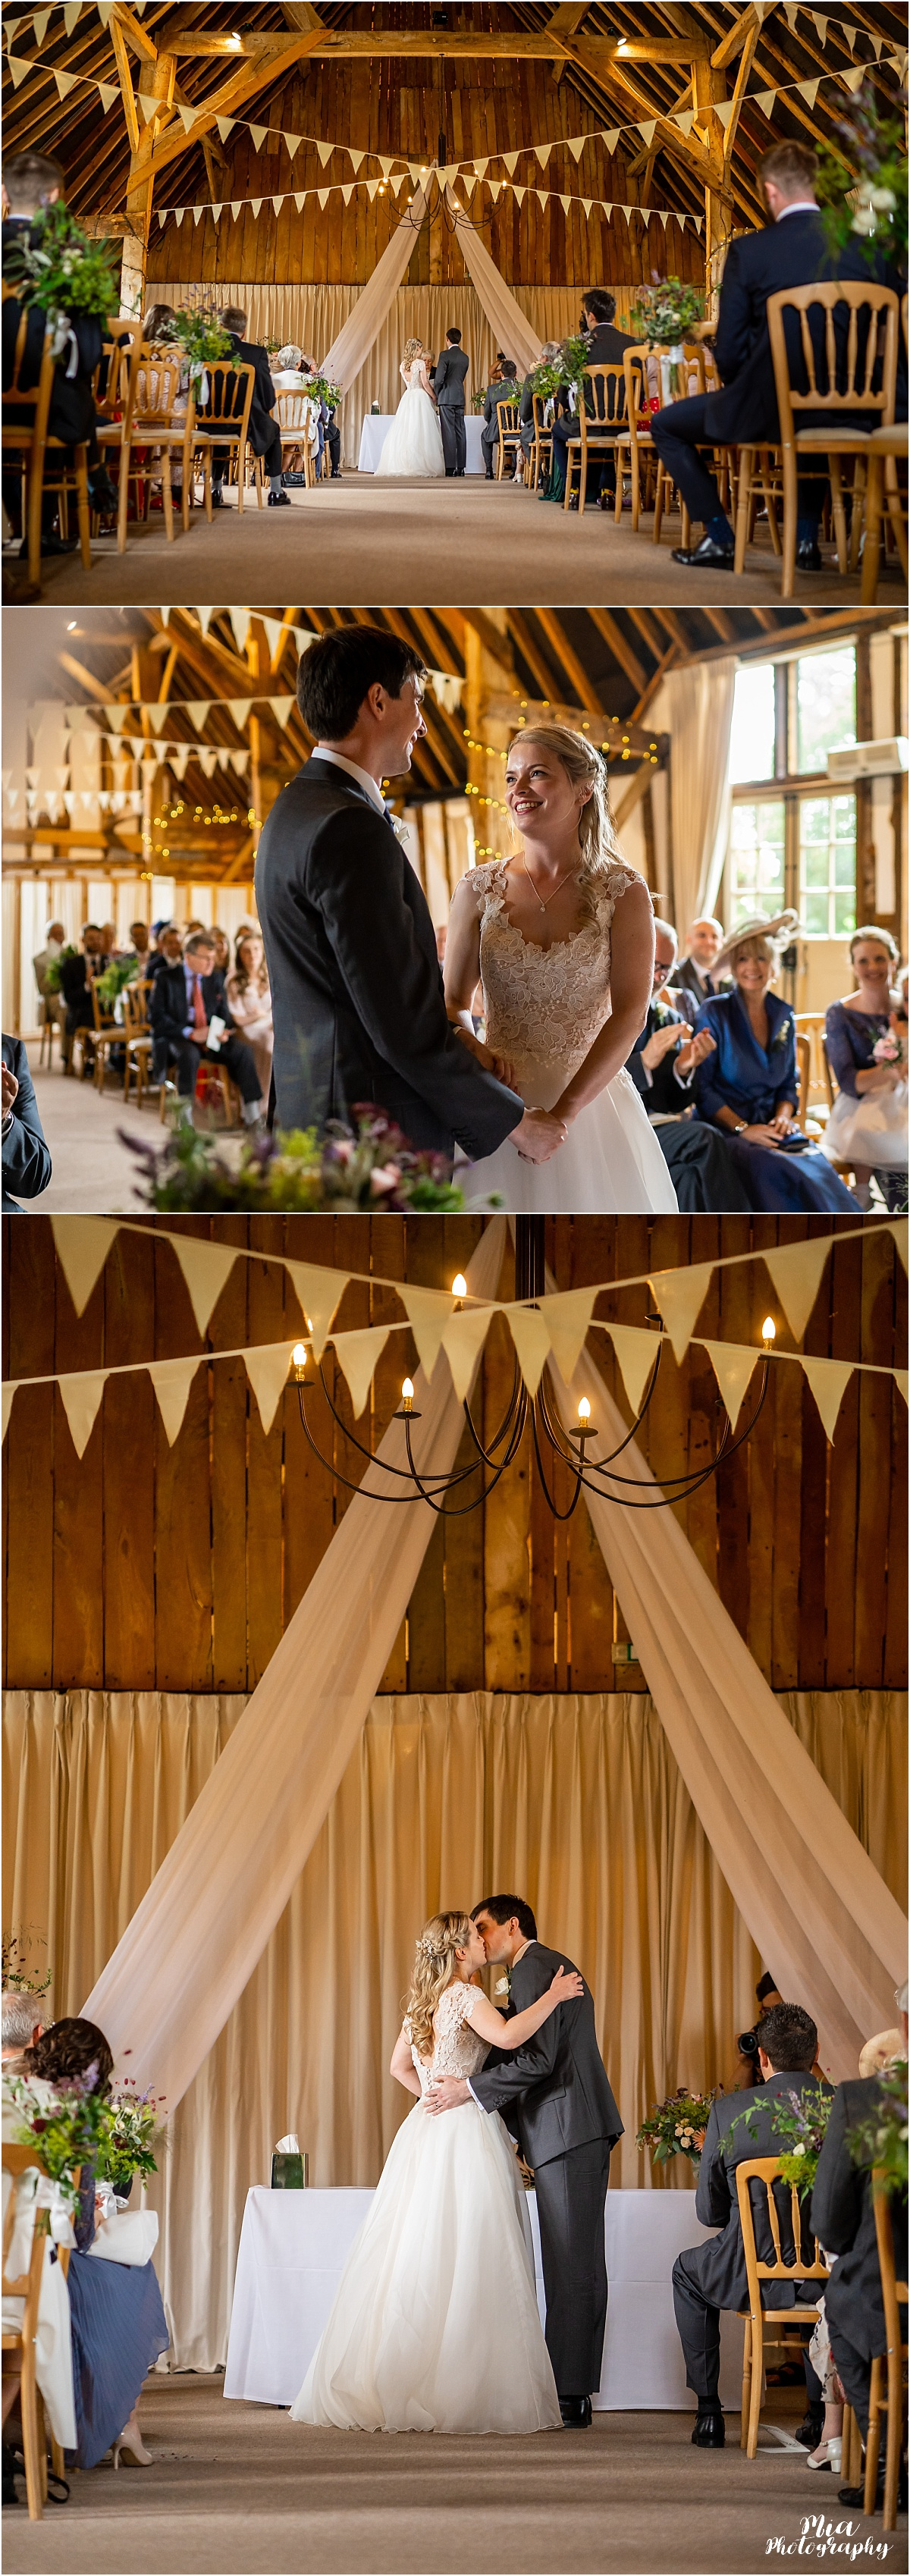 Clock barn wedding in Hampshire